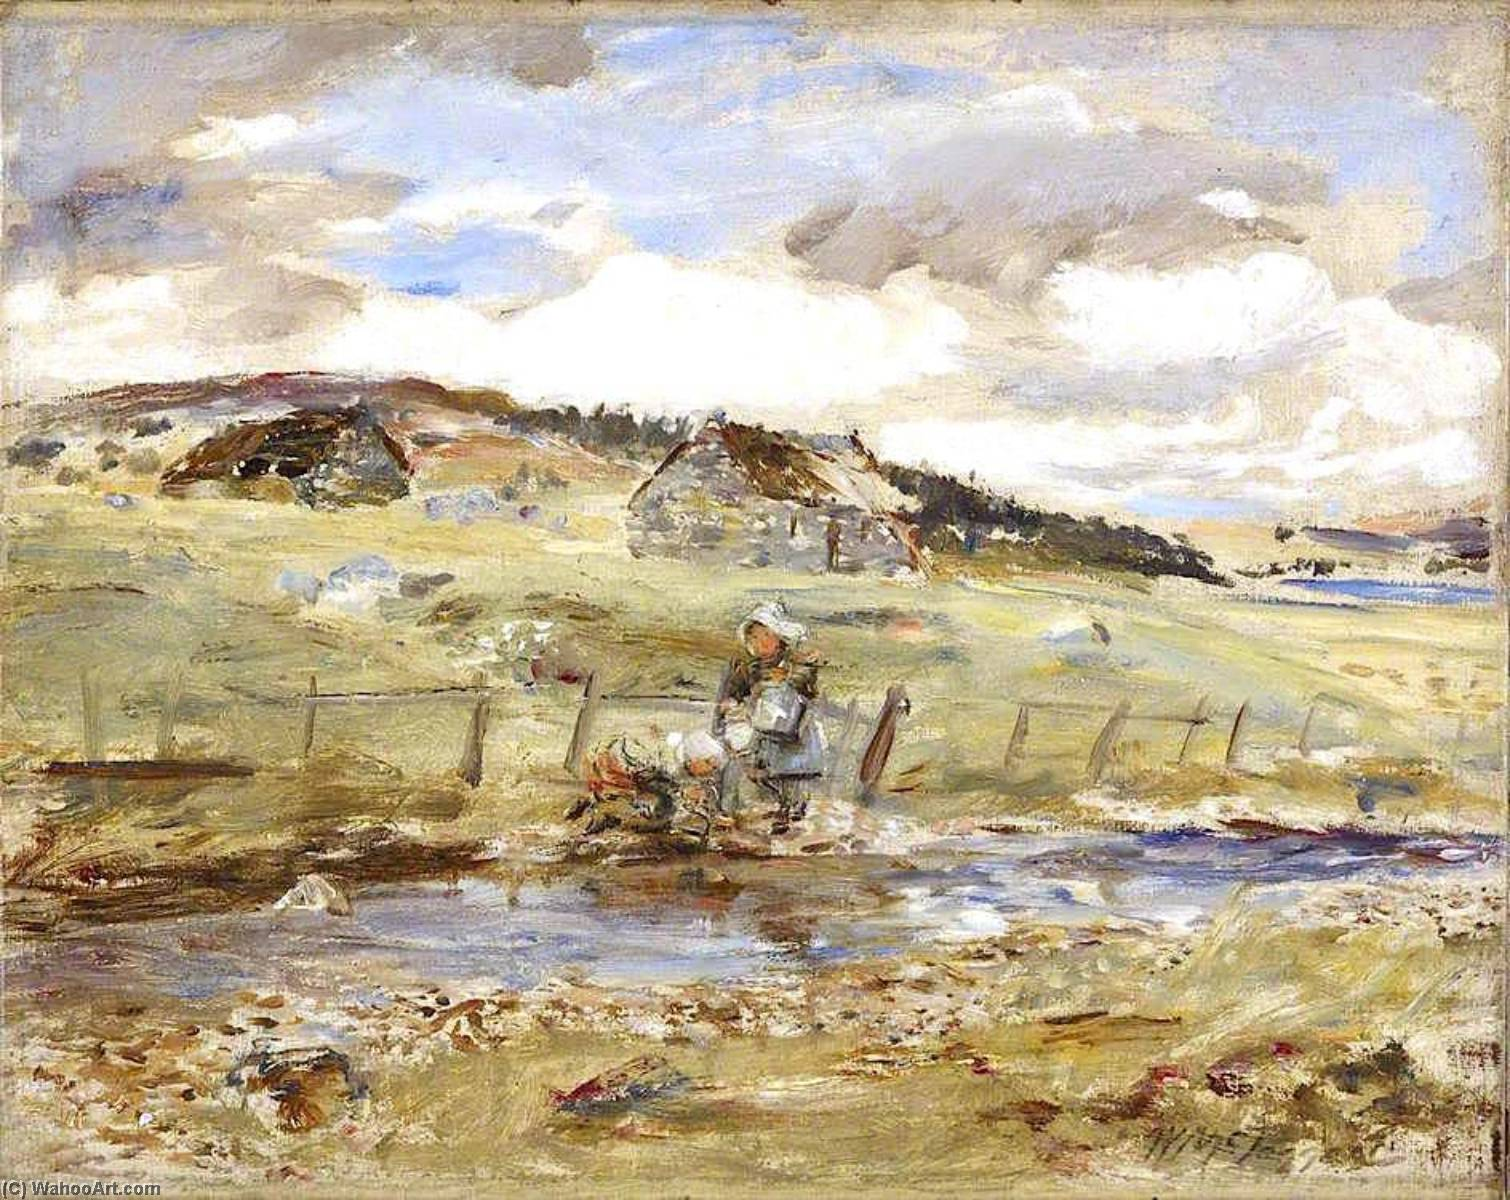 kinloch rannoch, 1893 de William Mctaggart (1835-1910, United Kingdom) | Grabados De Calidad Del Museo William Mctaggart | WahooArt.com